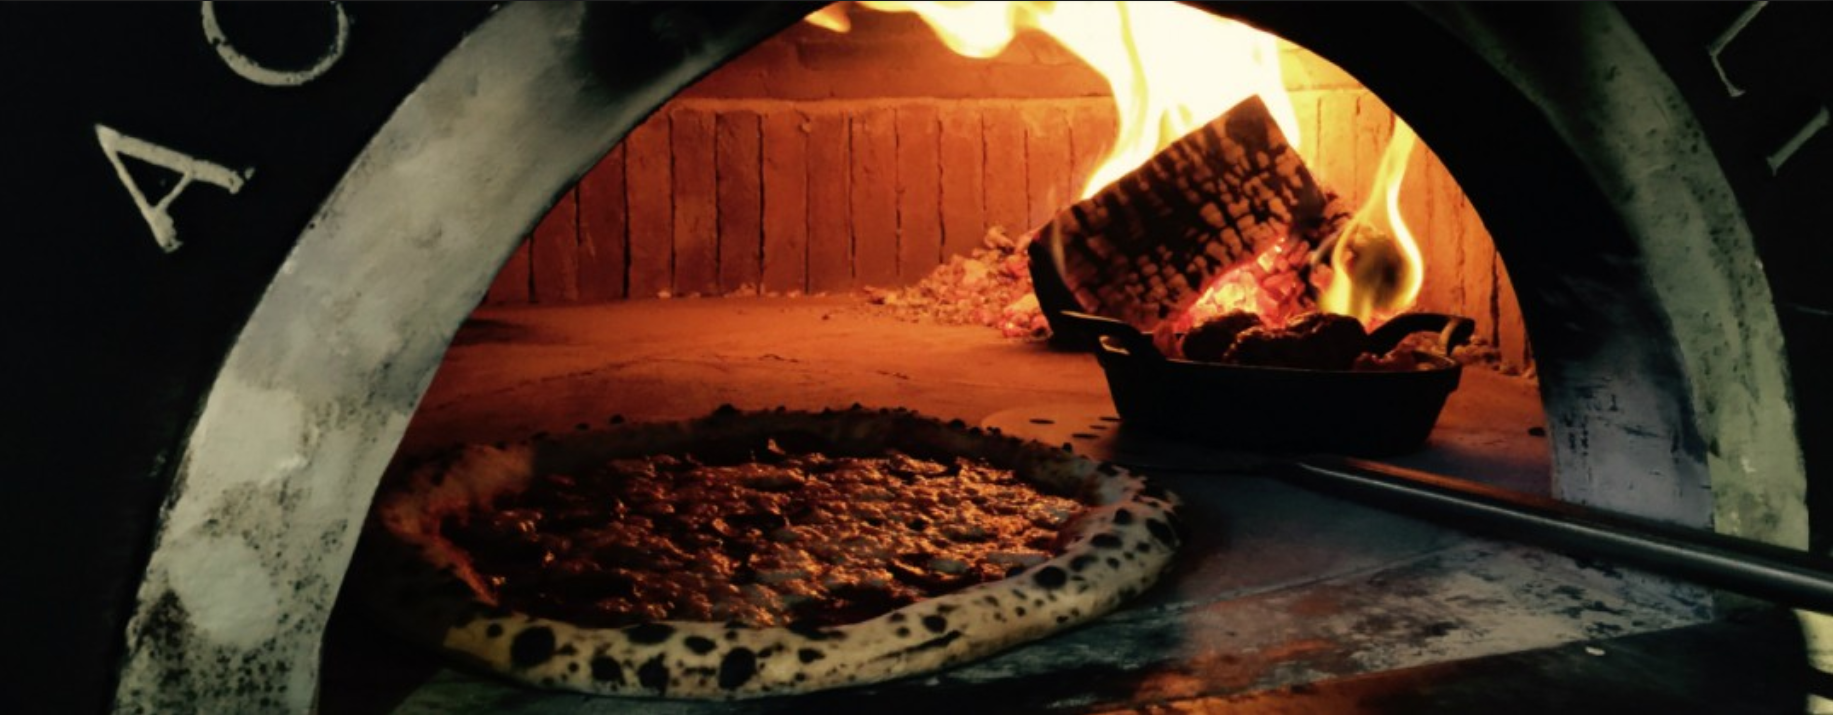 pizza getting cooked in coal